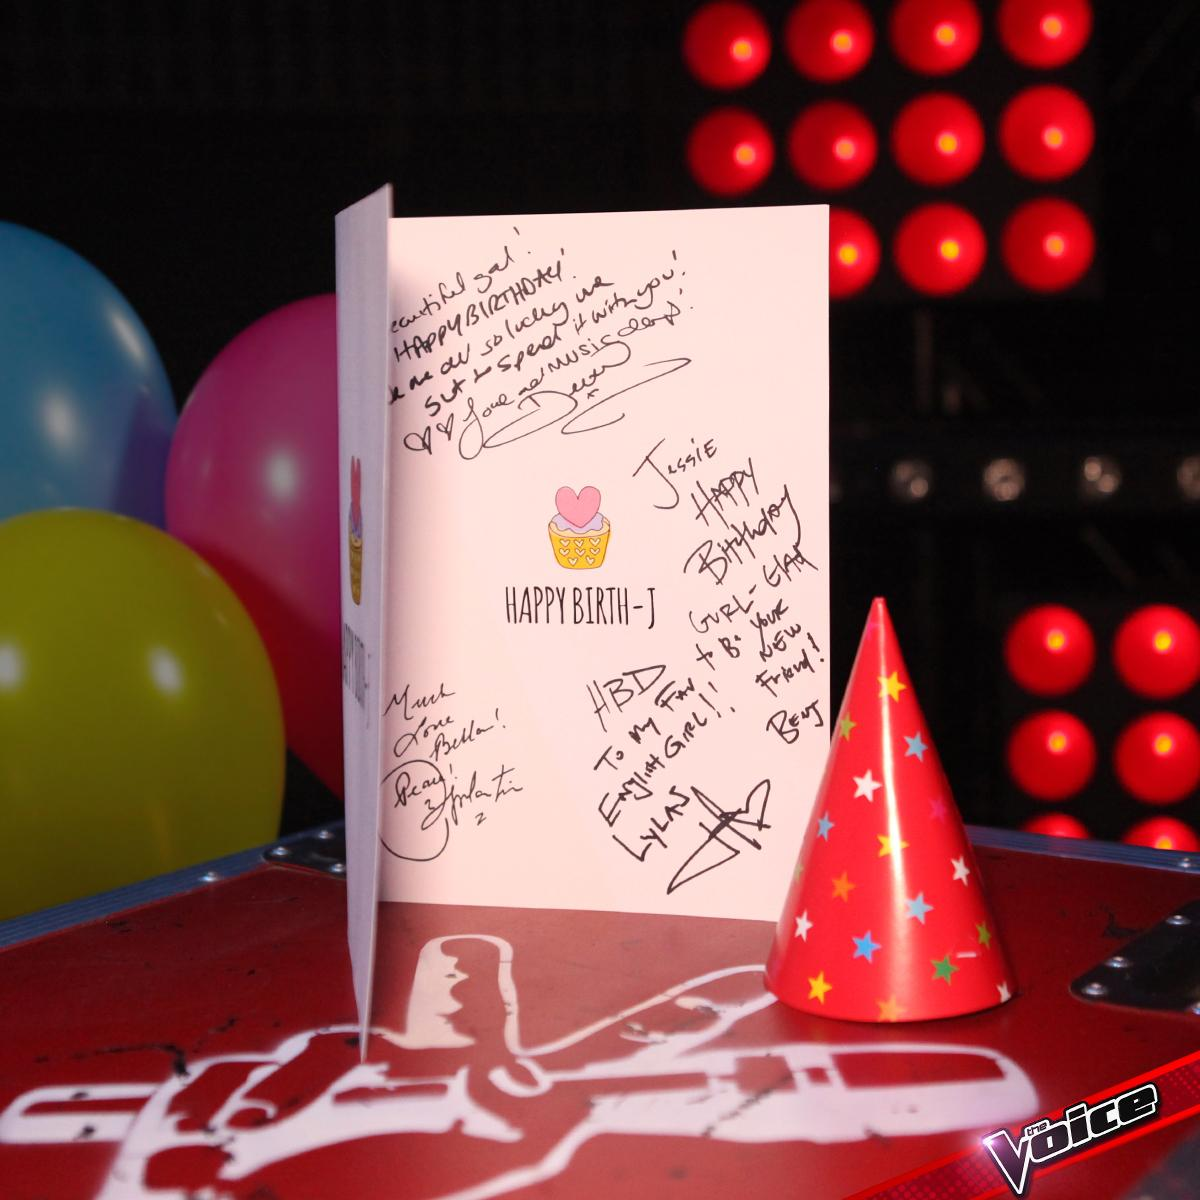 This Is The Card Our Coaches Got Jessie For Her Birthday Retweet To Send Your Bday Wishespictwitter HdQEiy16lL